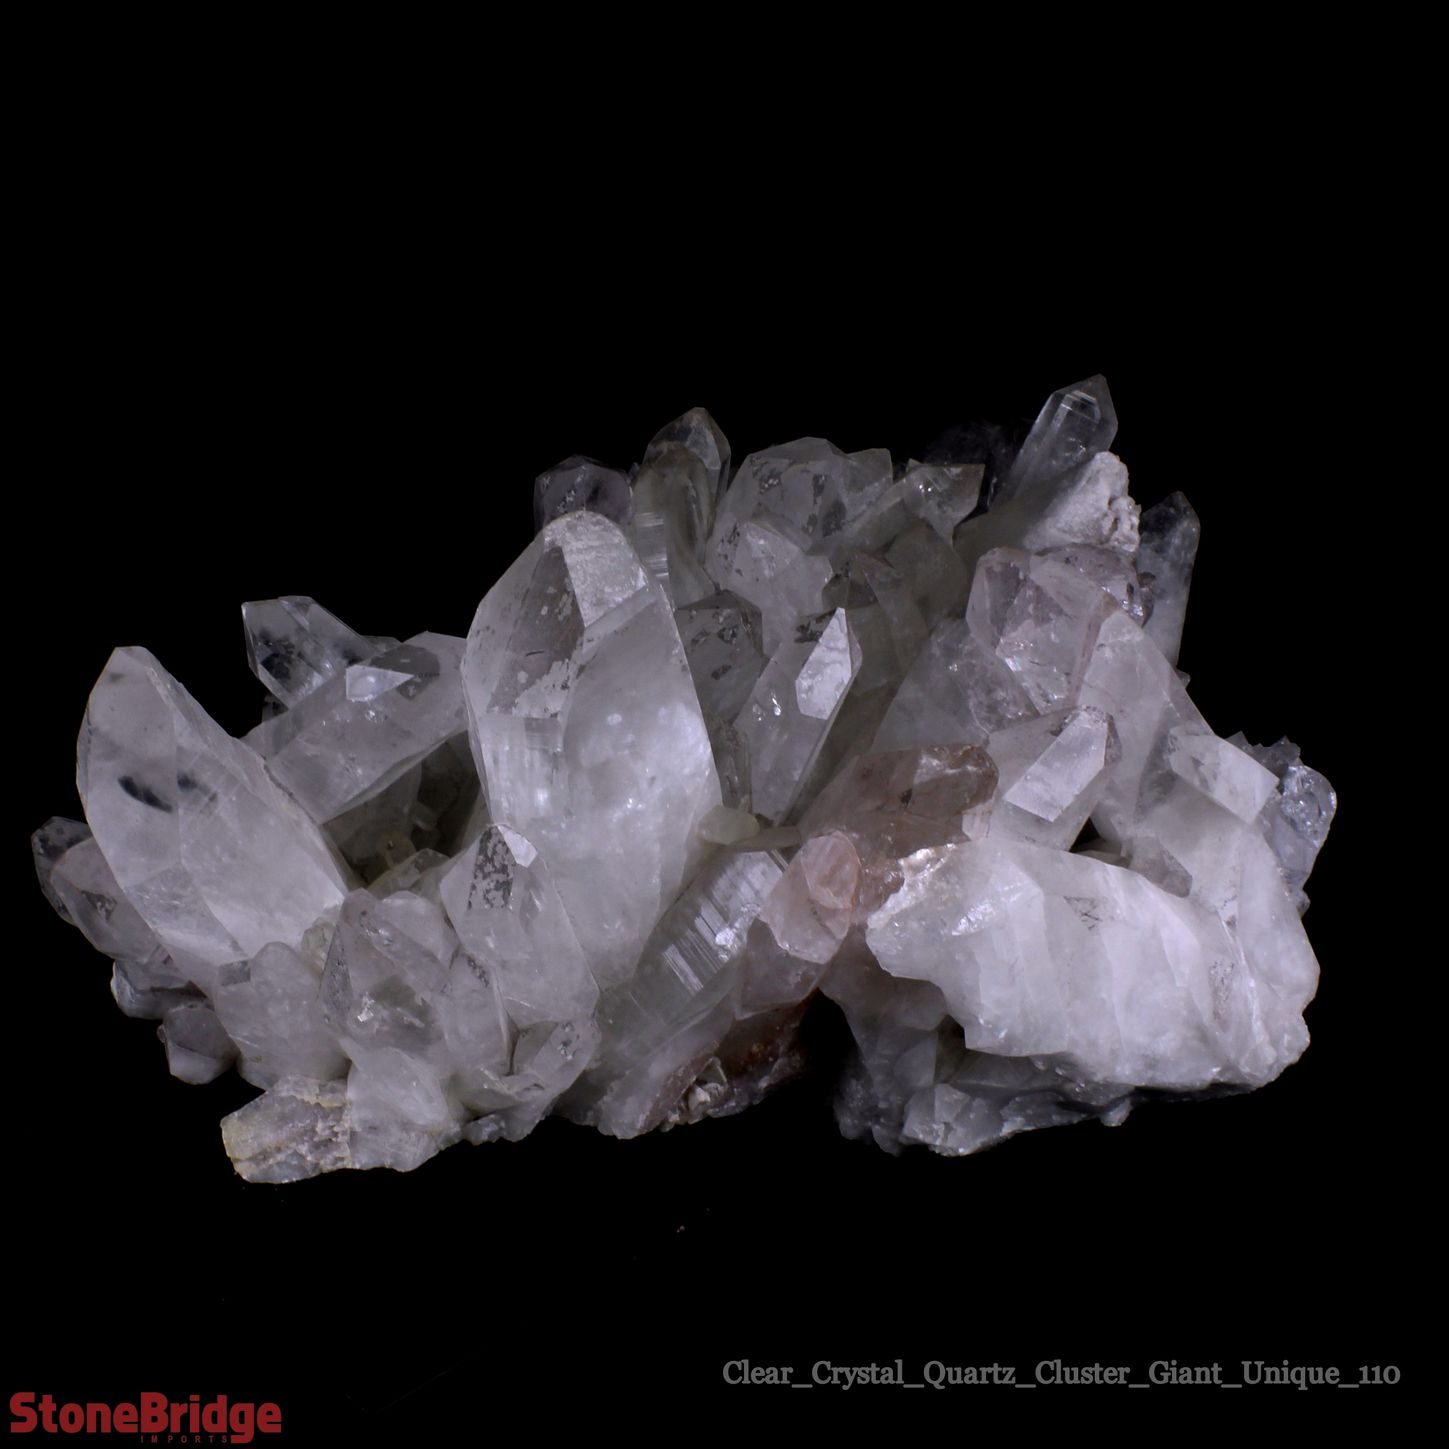 CLCRU110_Clear_Crystal_Quartz_Cluster_Giant_Unique_11014.jpg